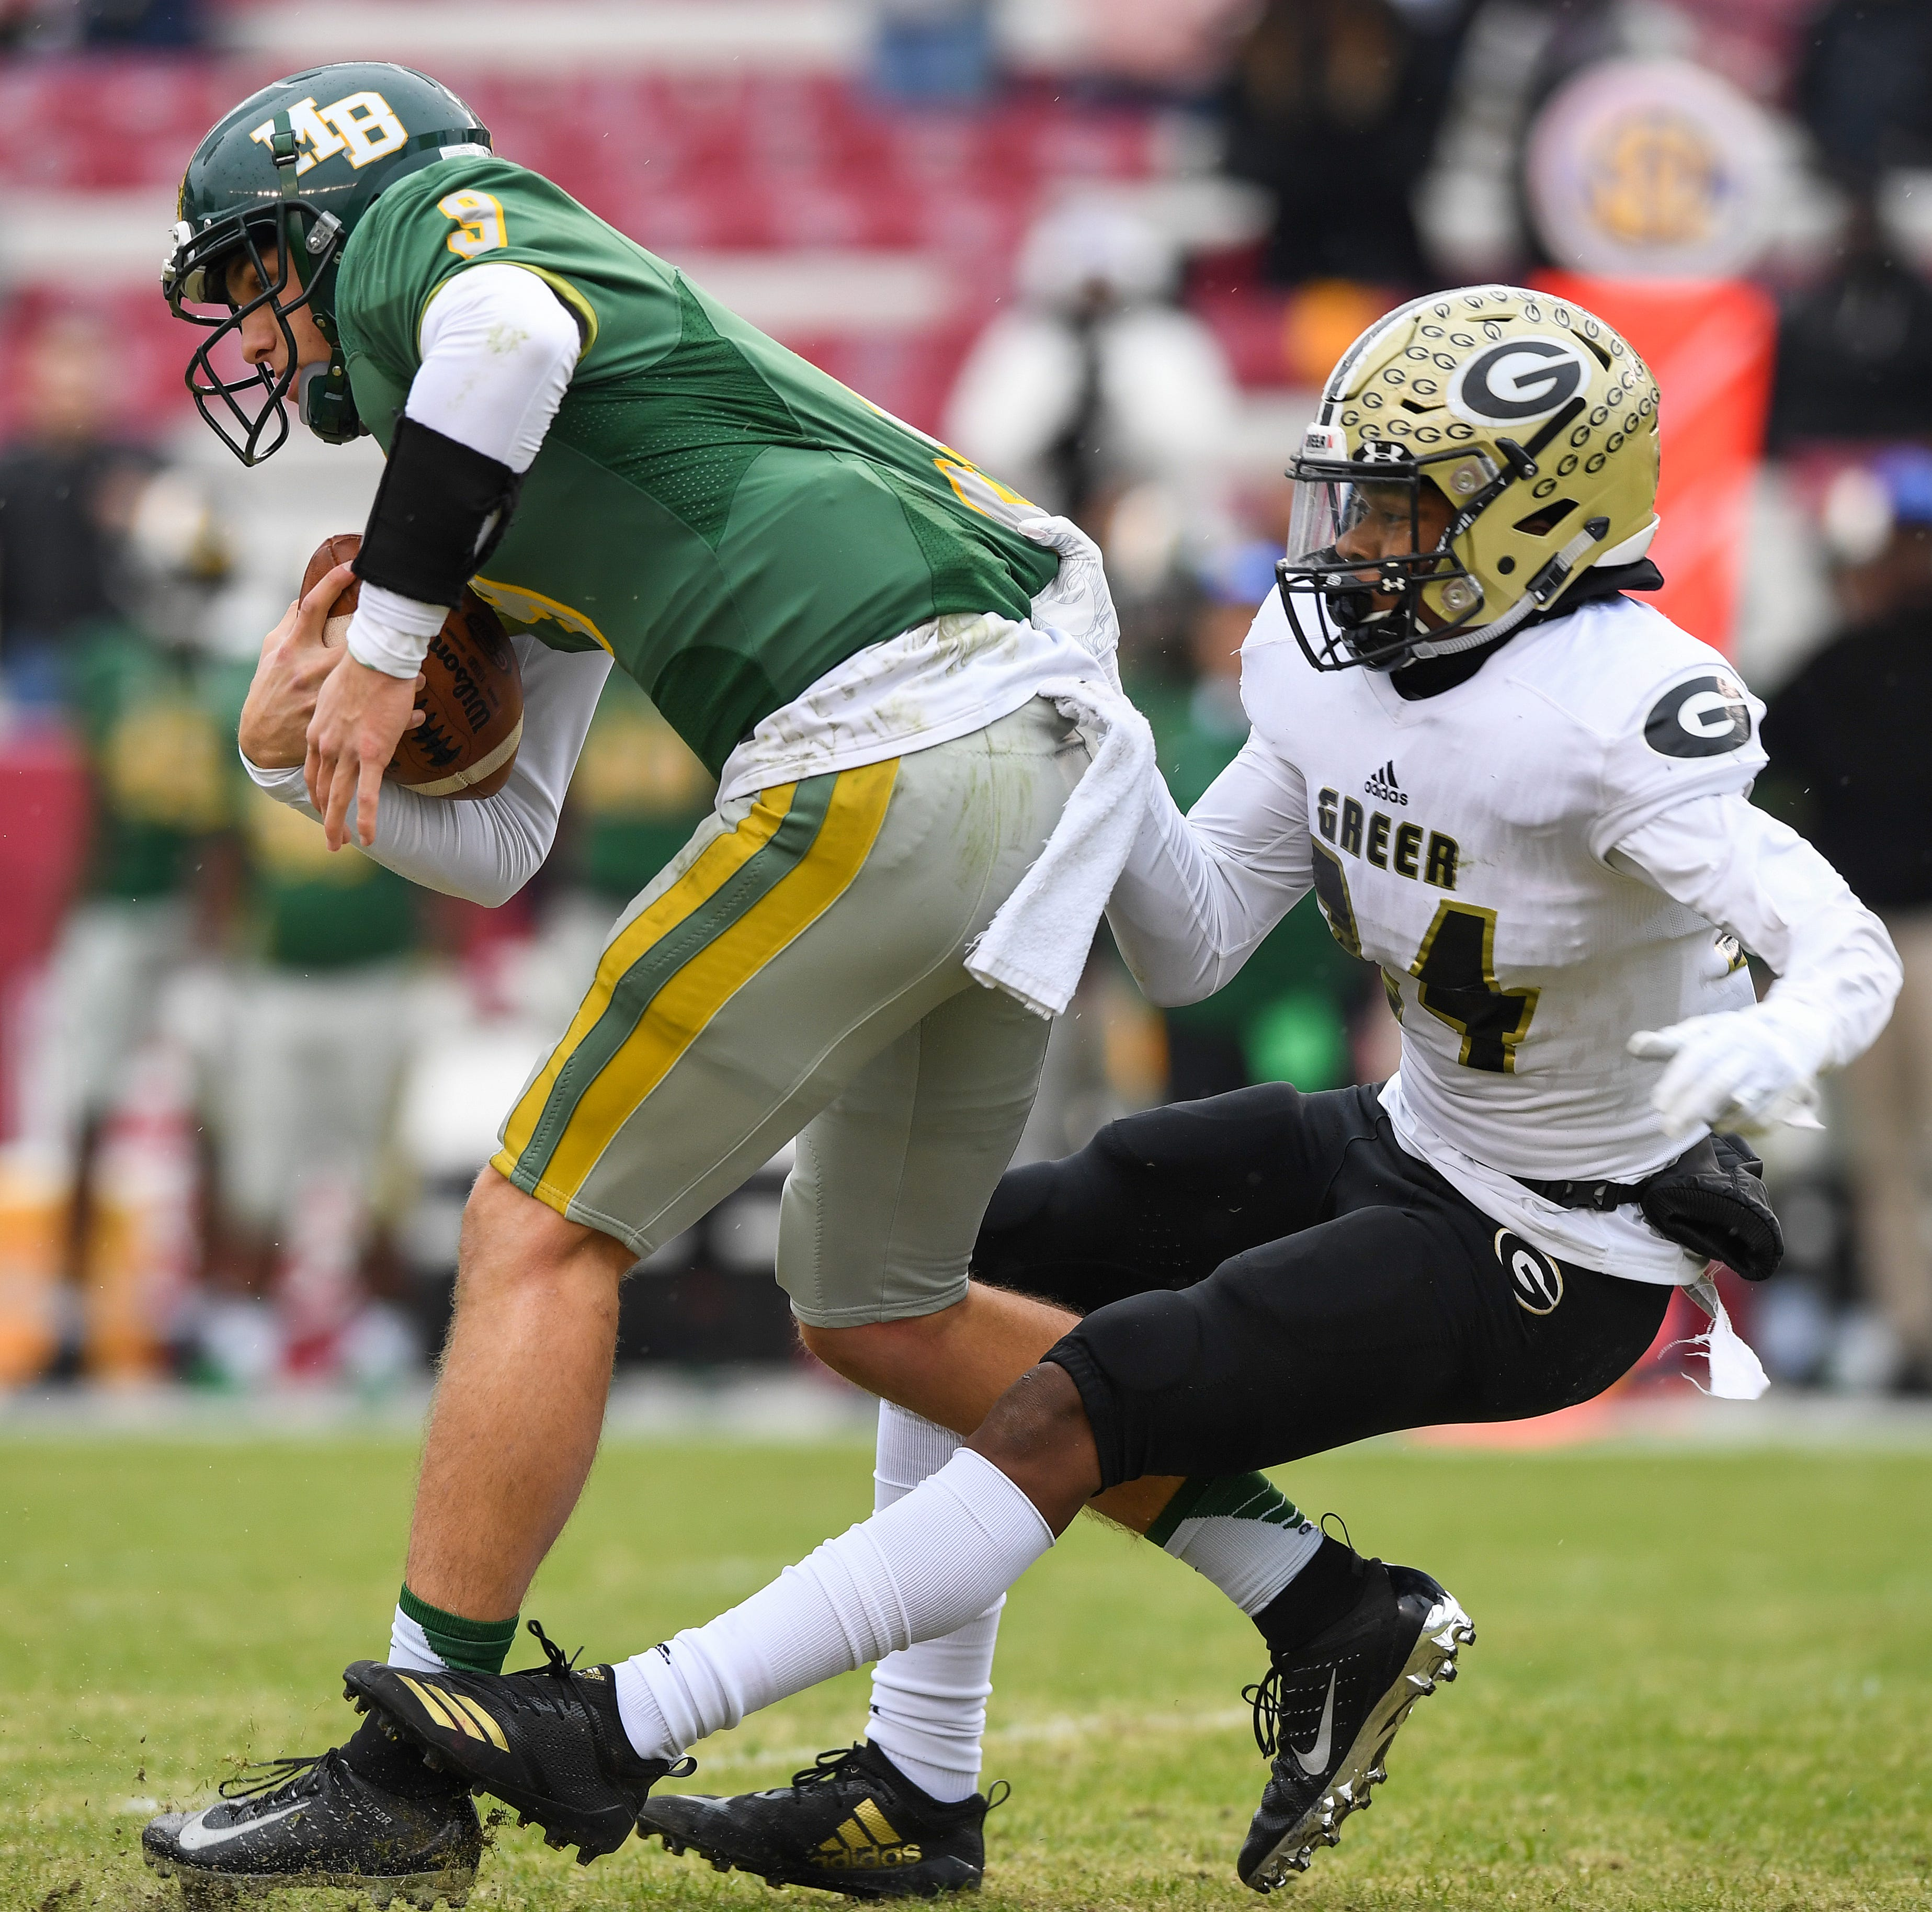 Greer's Najawuan Smith (24) sacks Myrtle Beach quarterback Luke Doty (9) in the class AAAA state finals Friday, December 5, 2018 at Williams Brice Stadium in Columbia.